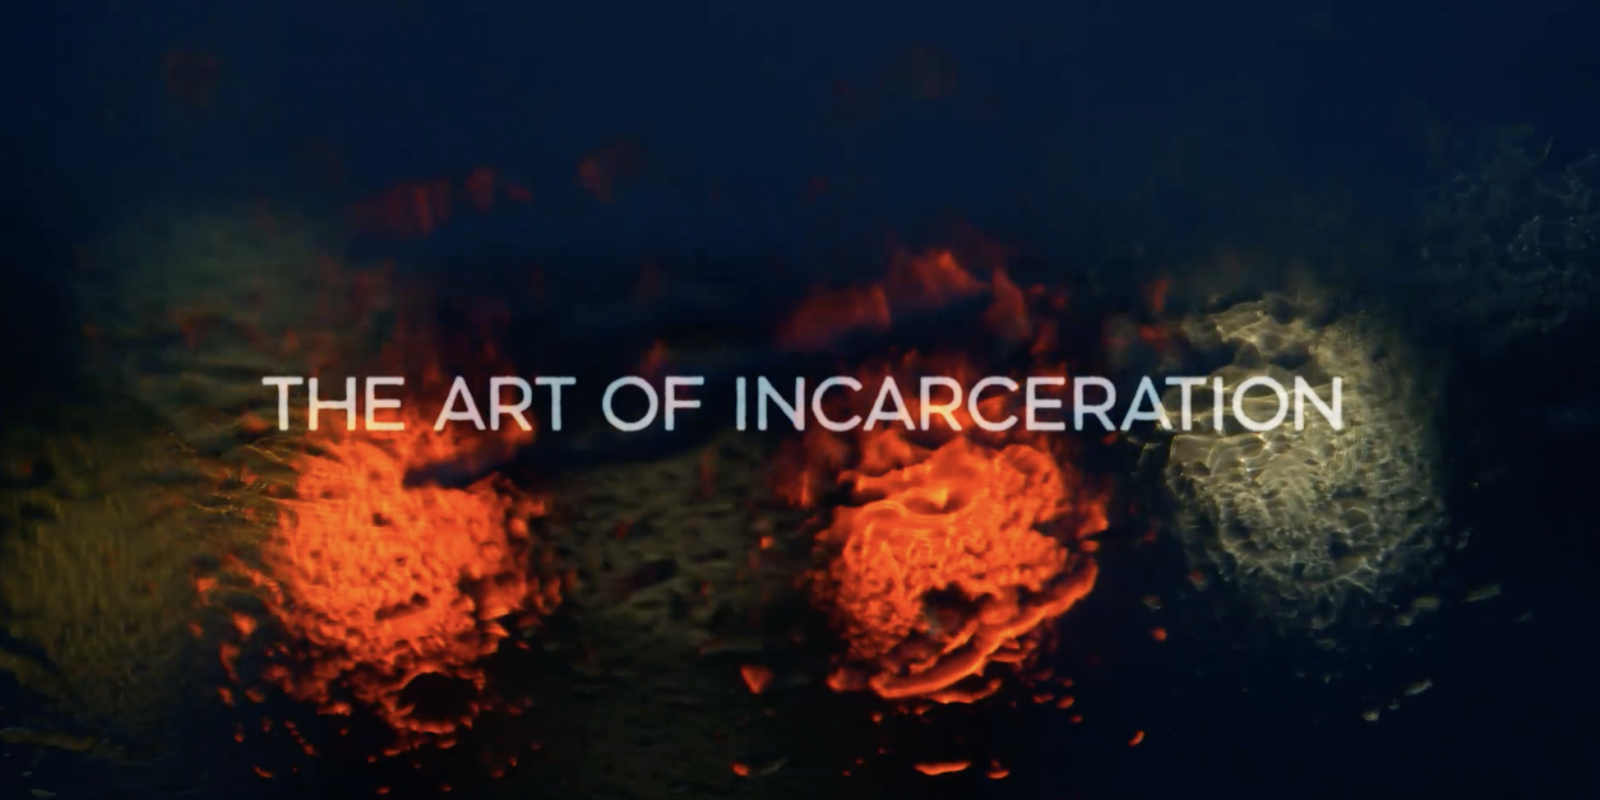 The Art of Incarceration